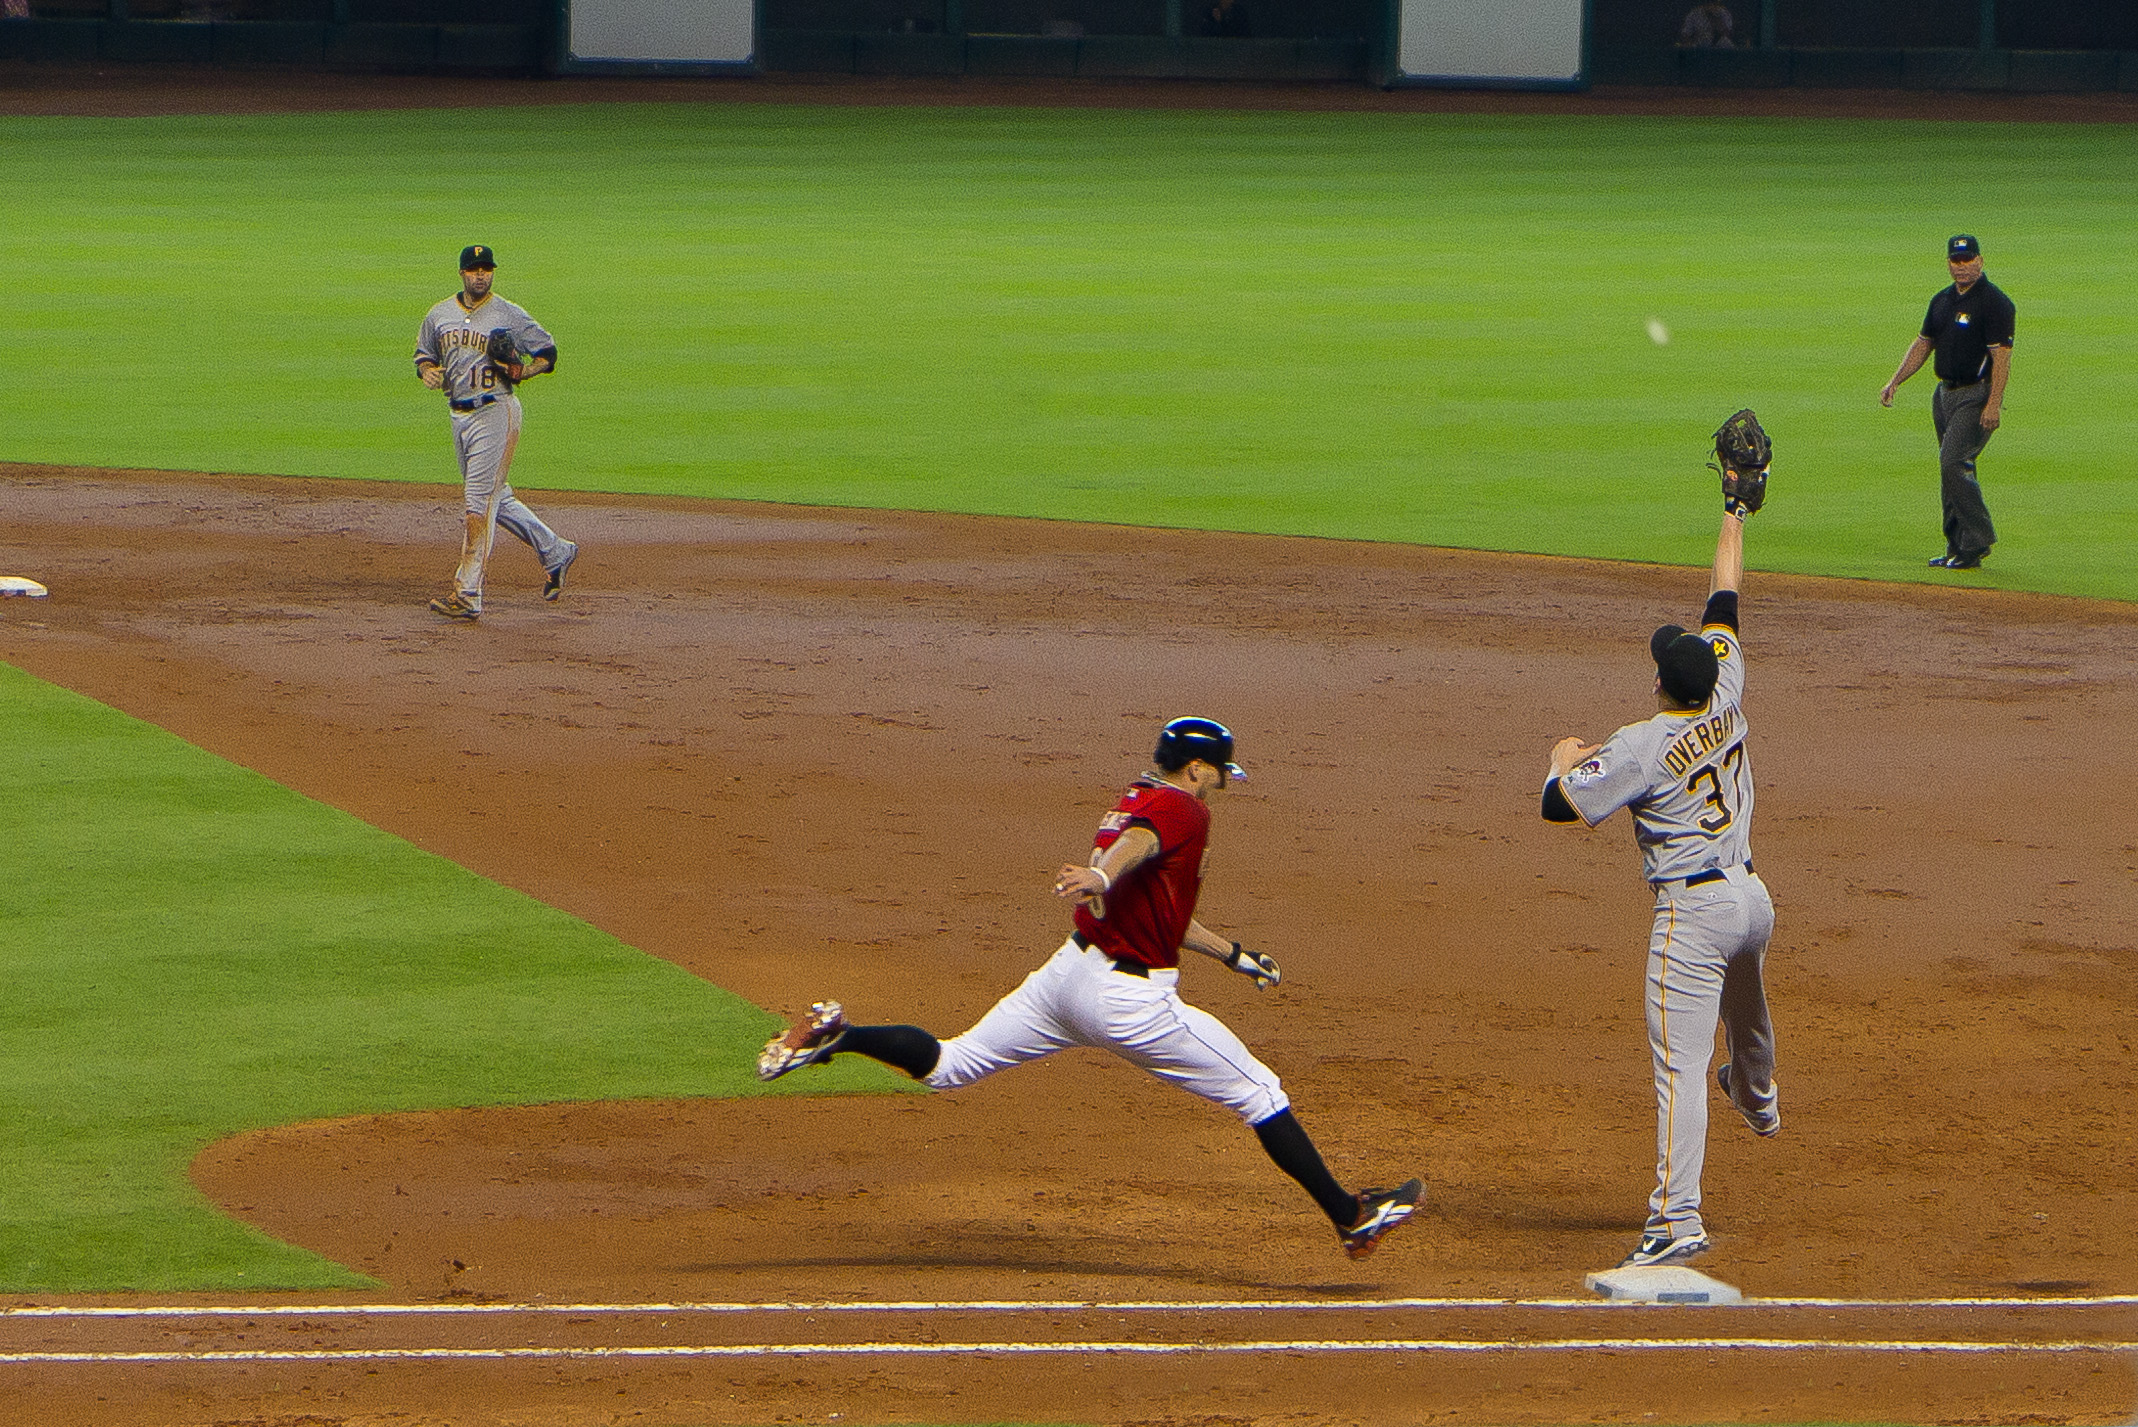 Lyle Overbay integrates multiple sources of sensory information. Source: Graham Richter, Wikimedia.